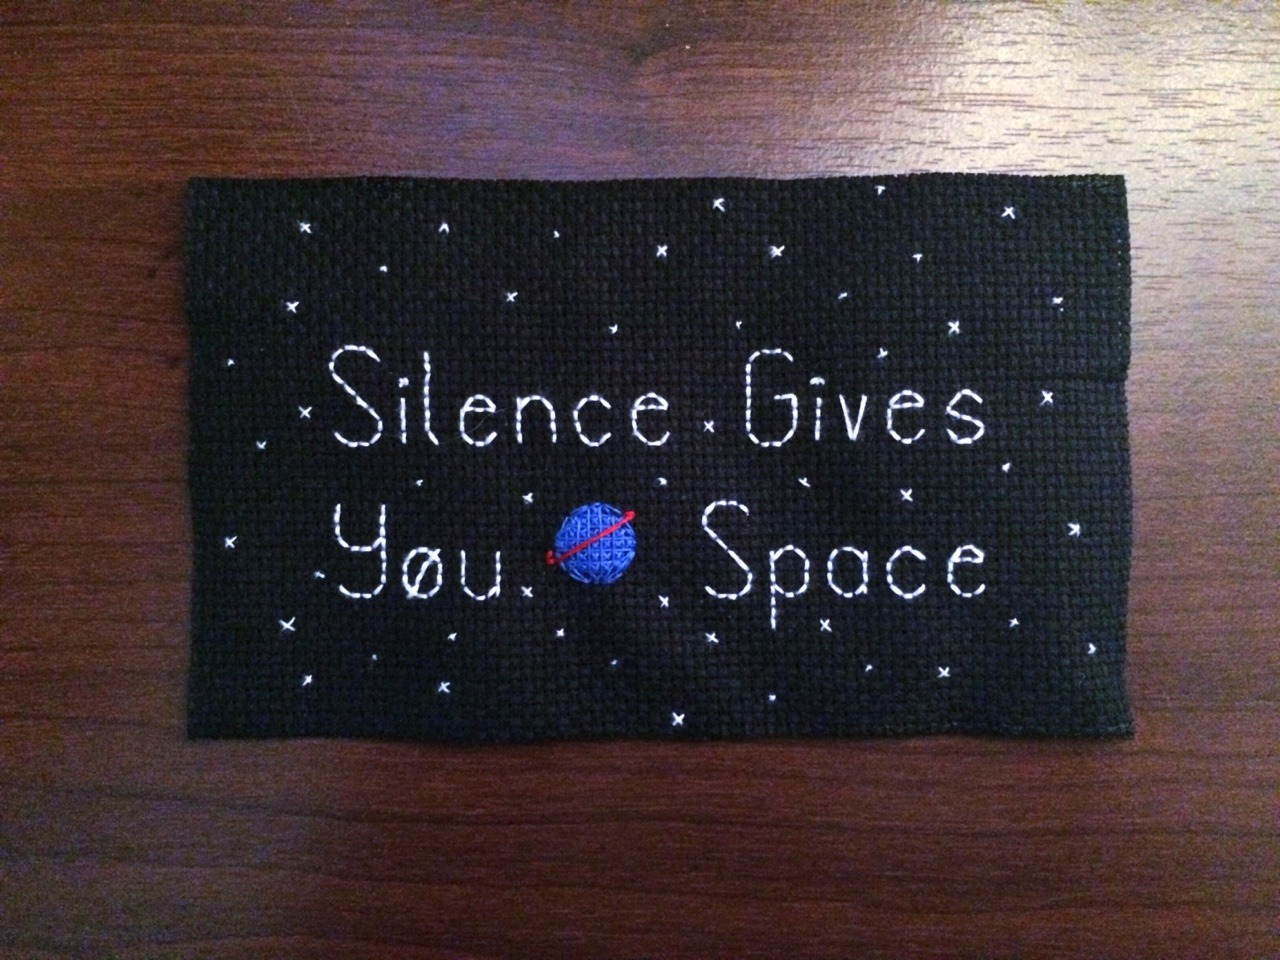 silance gives you space